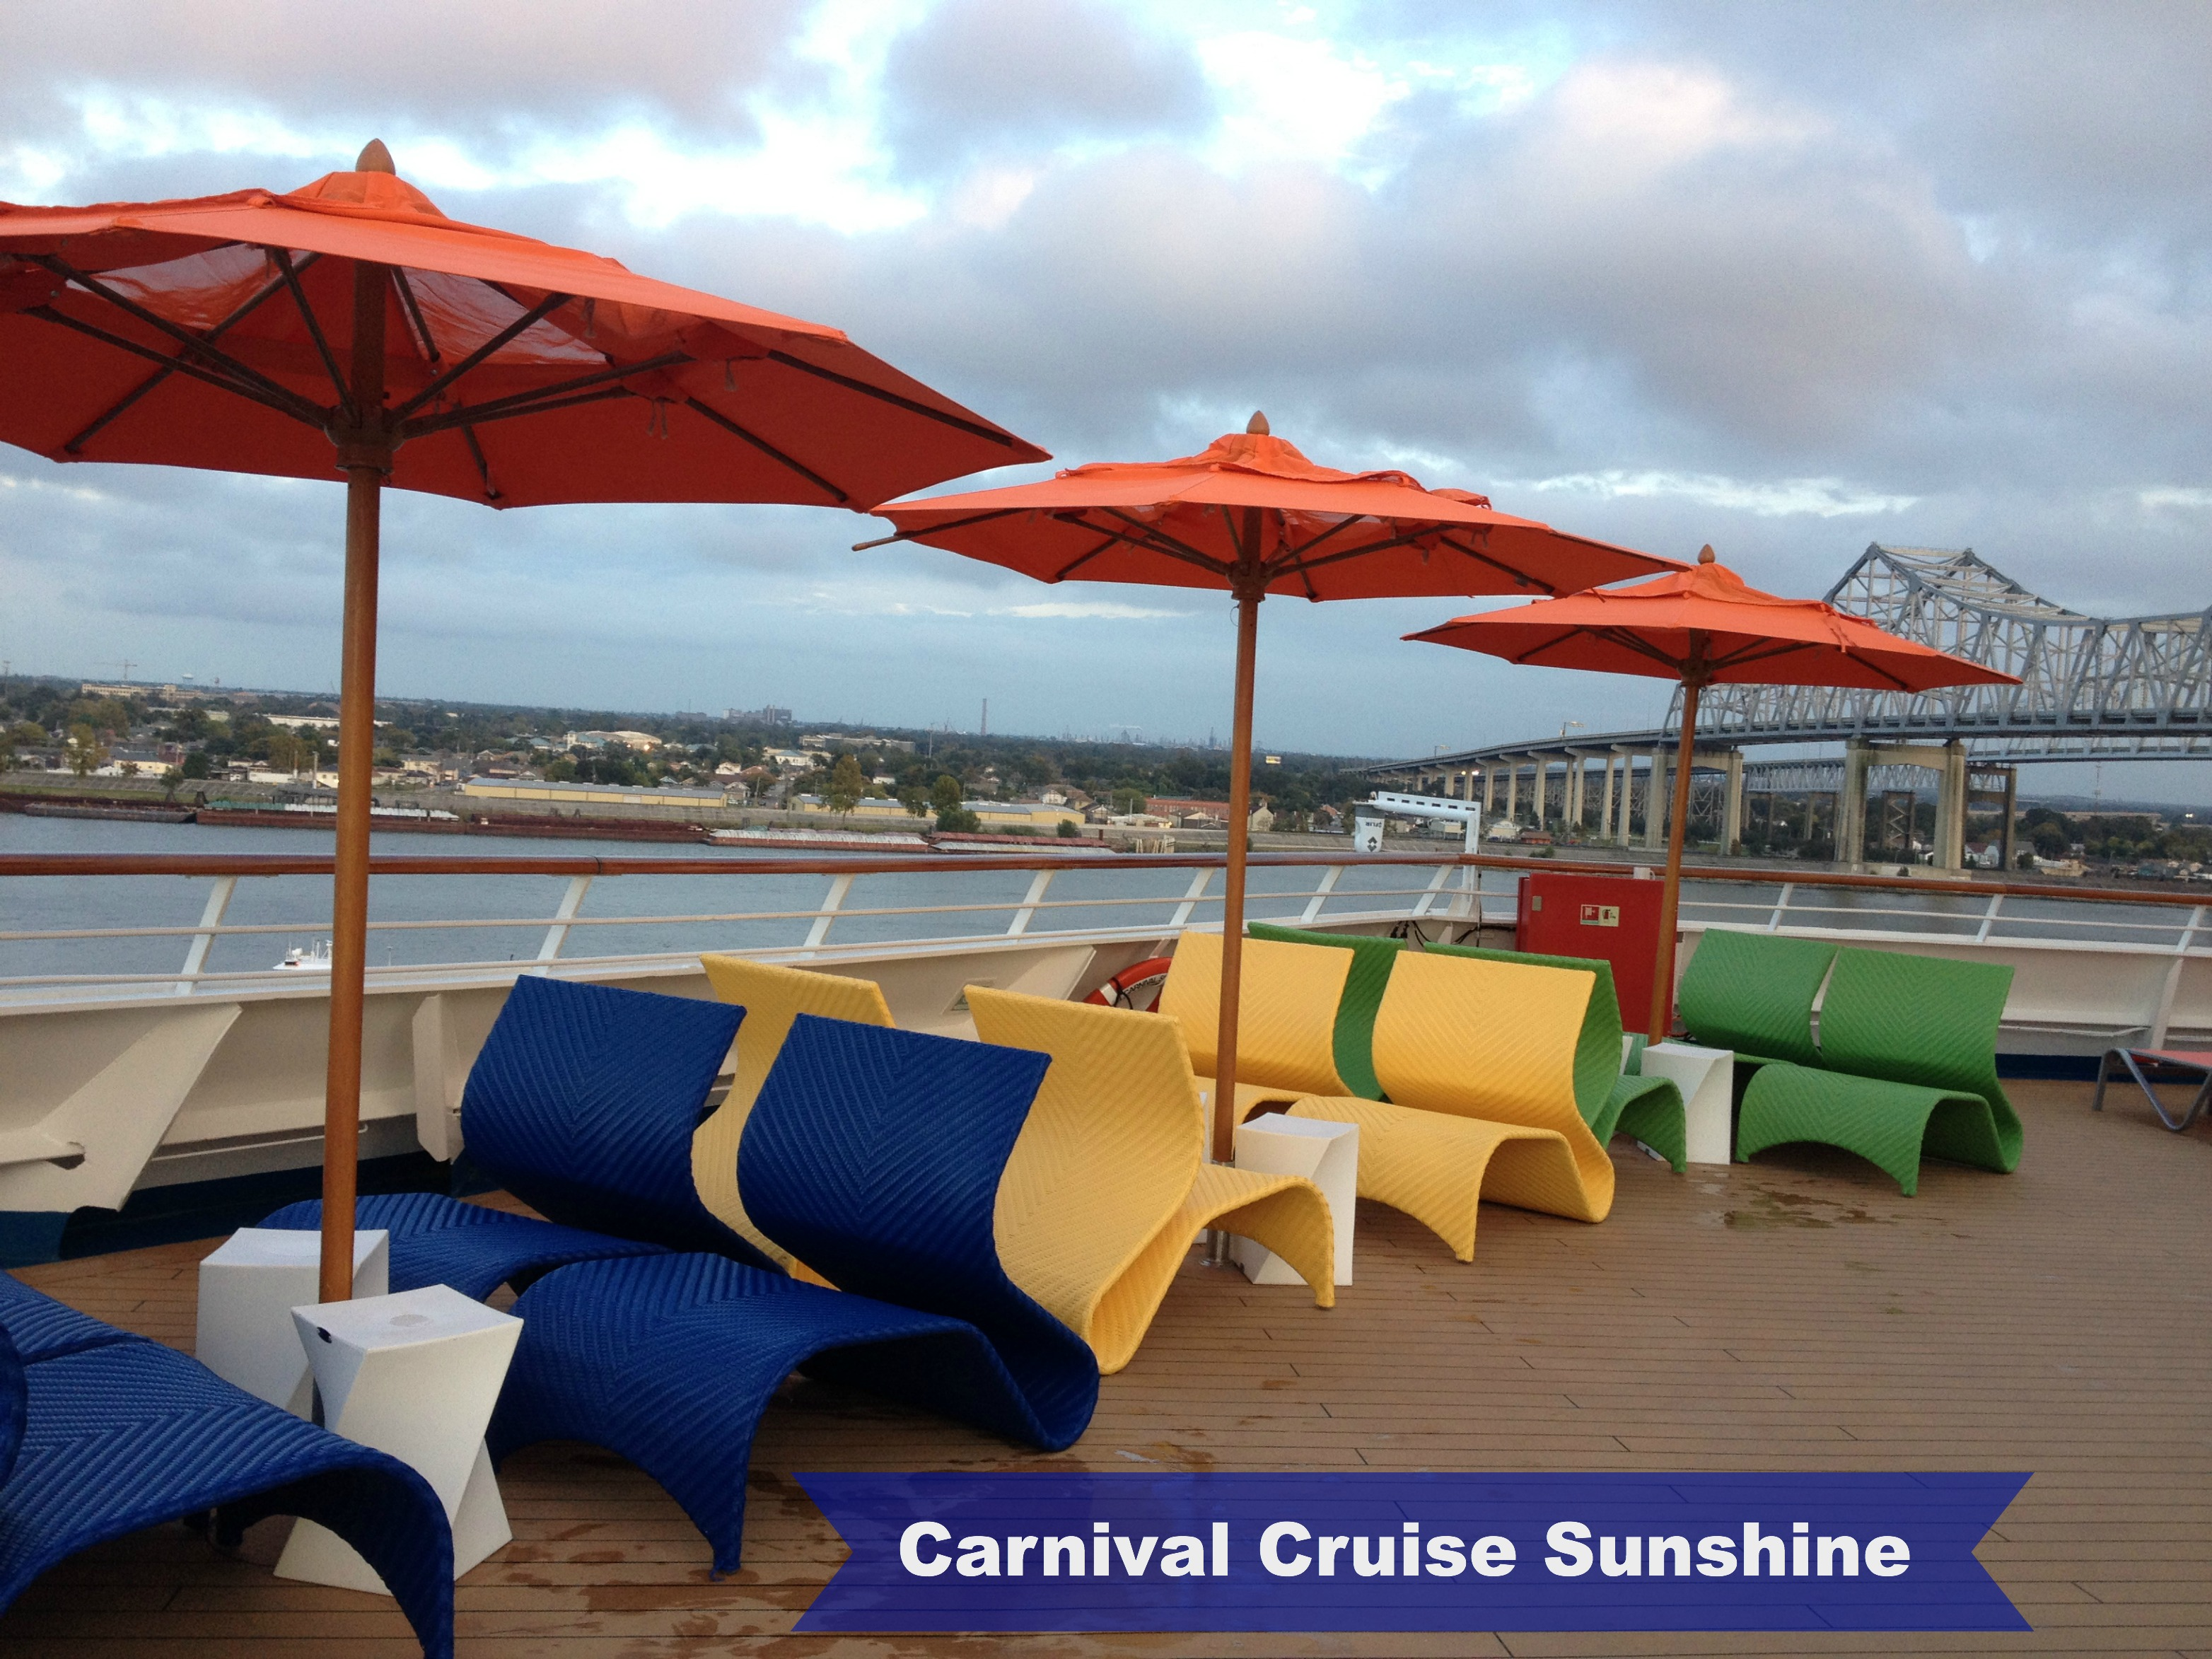 Carnival Cruise Sunshine